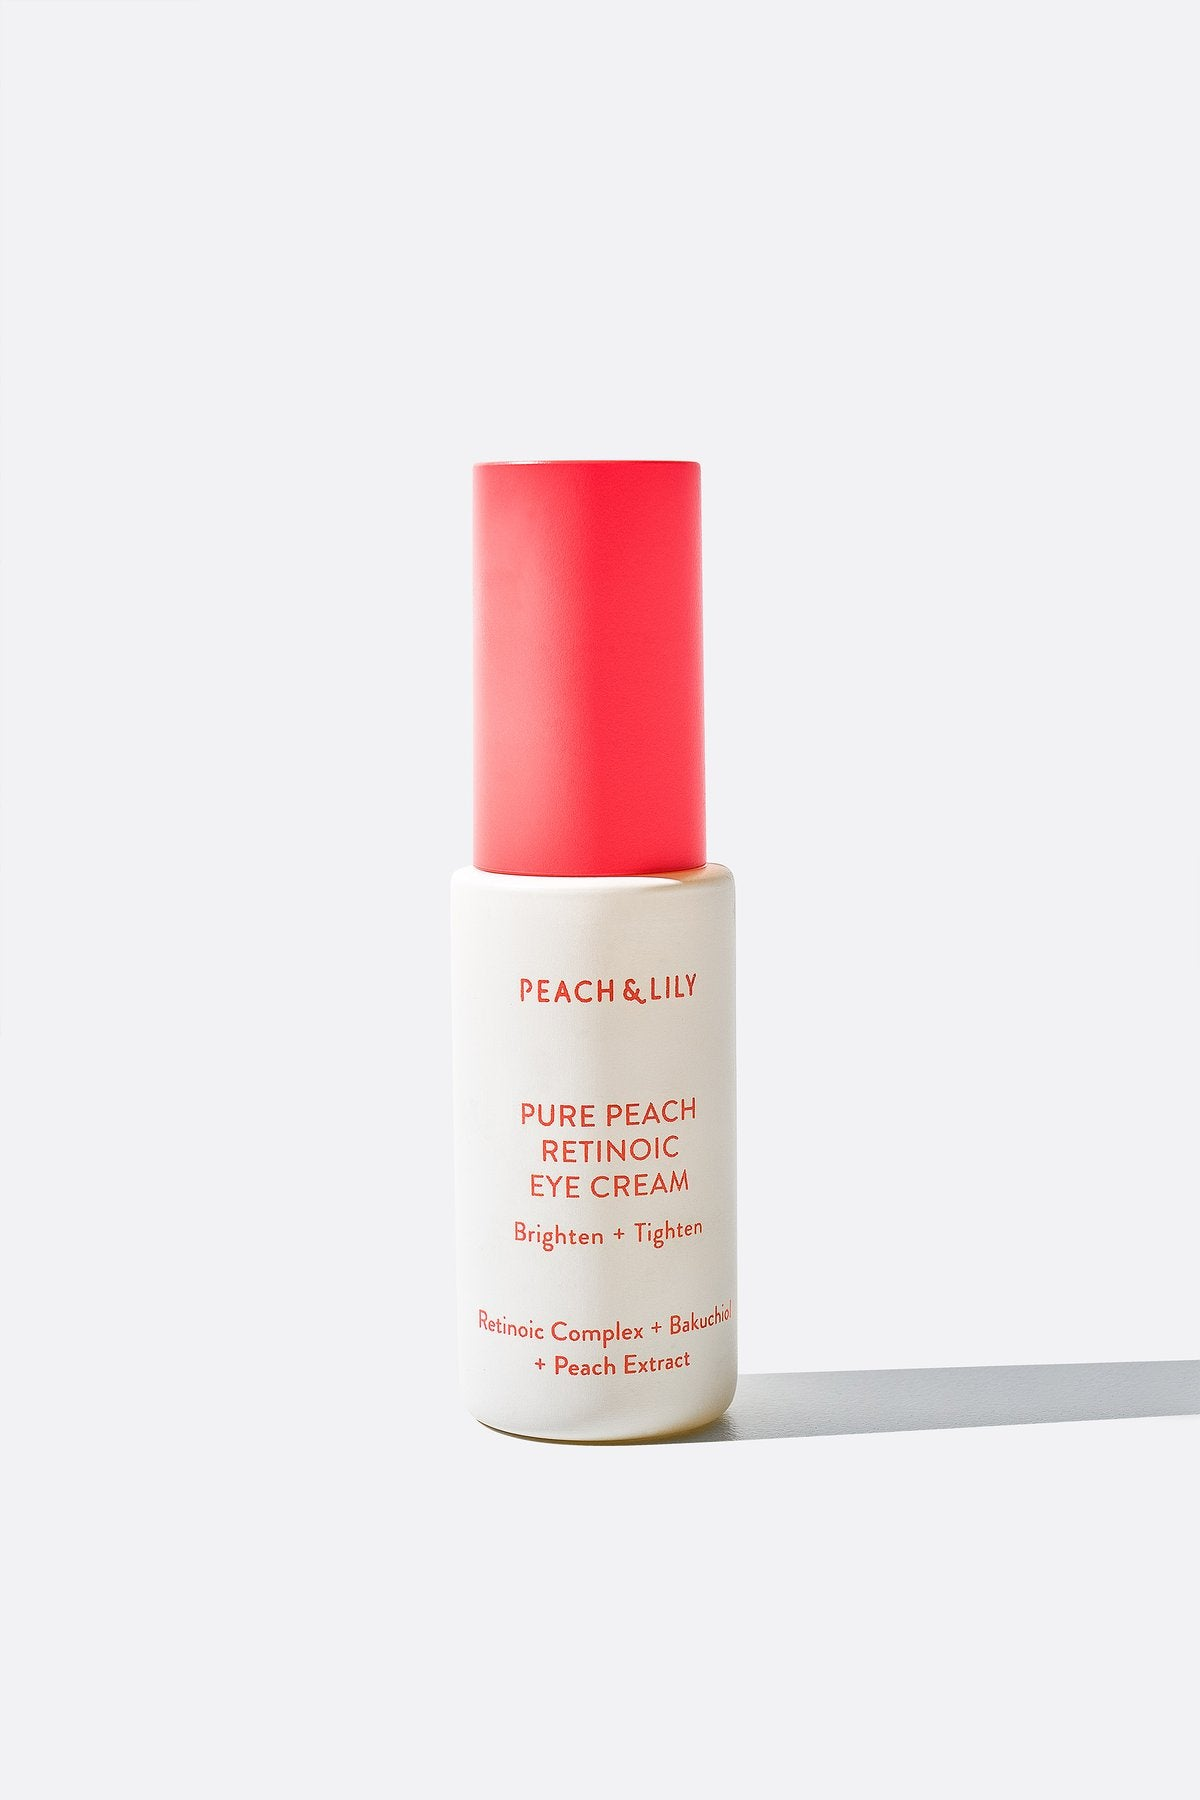 Peach & Lily Pure Peach Retinoic Eye Cream (20ml). Worldwide Shipping - Singapore, Malaysia, Brunei, Philippines, Indonesia, India, Australia, Hong Kong, USA, UAE, Europe!